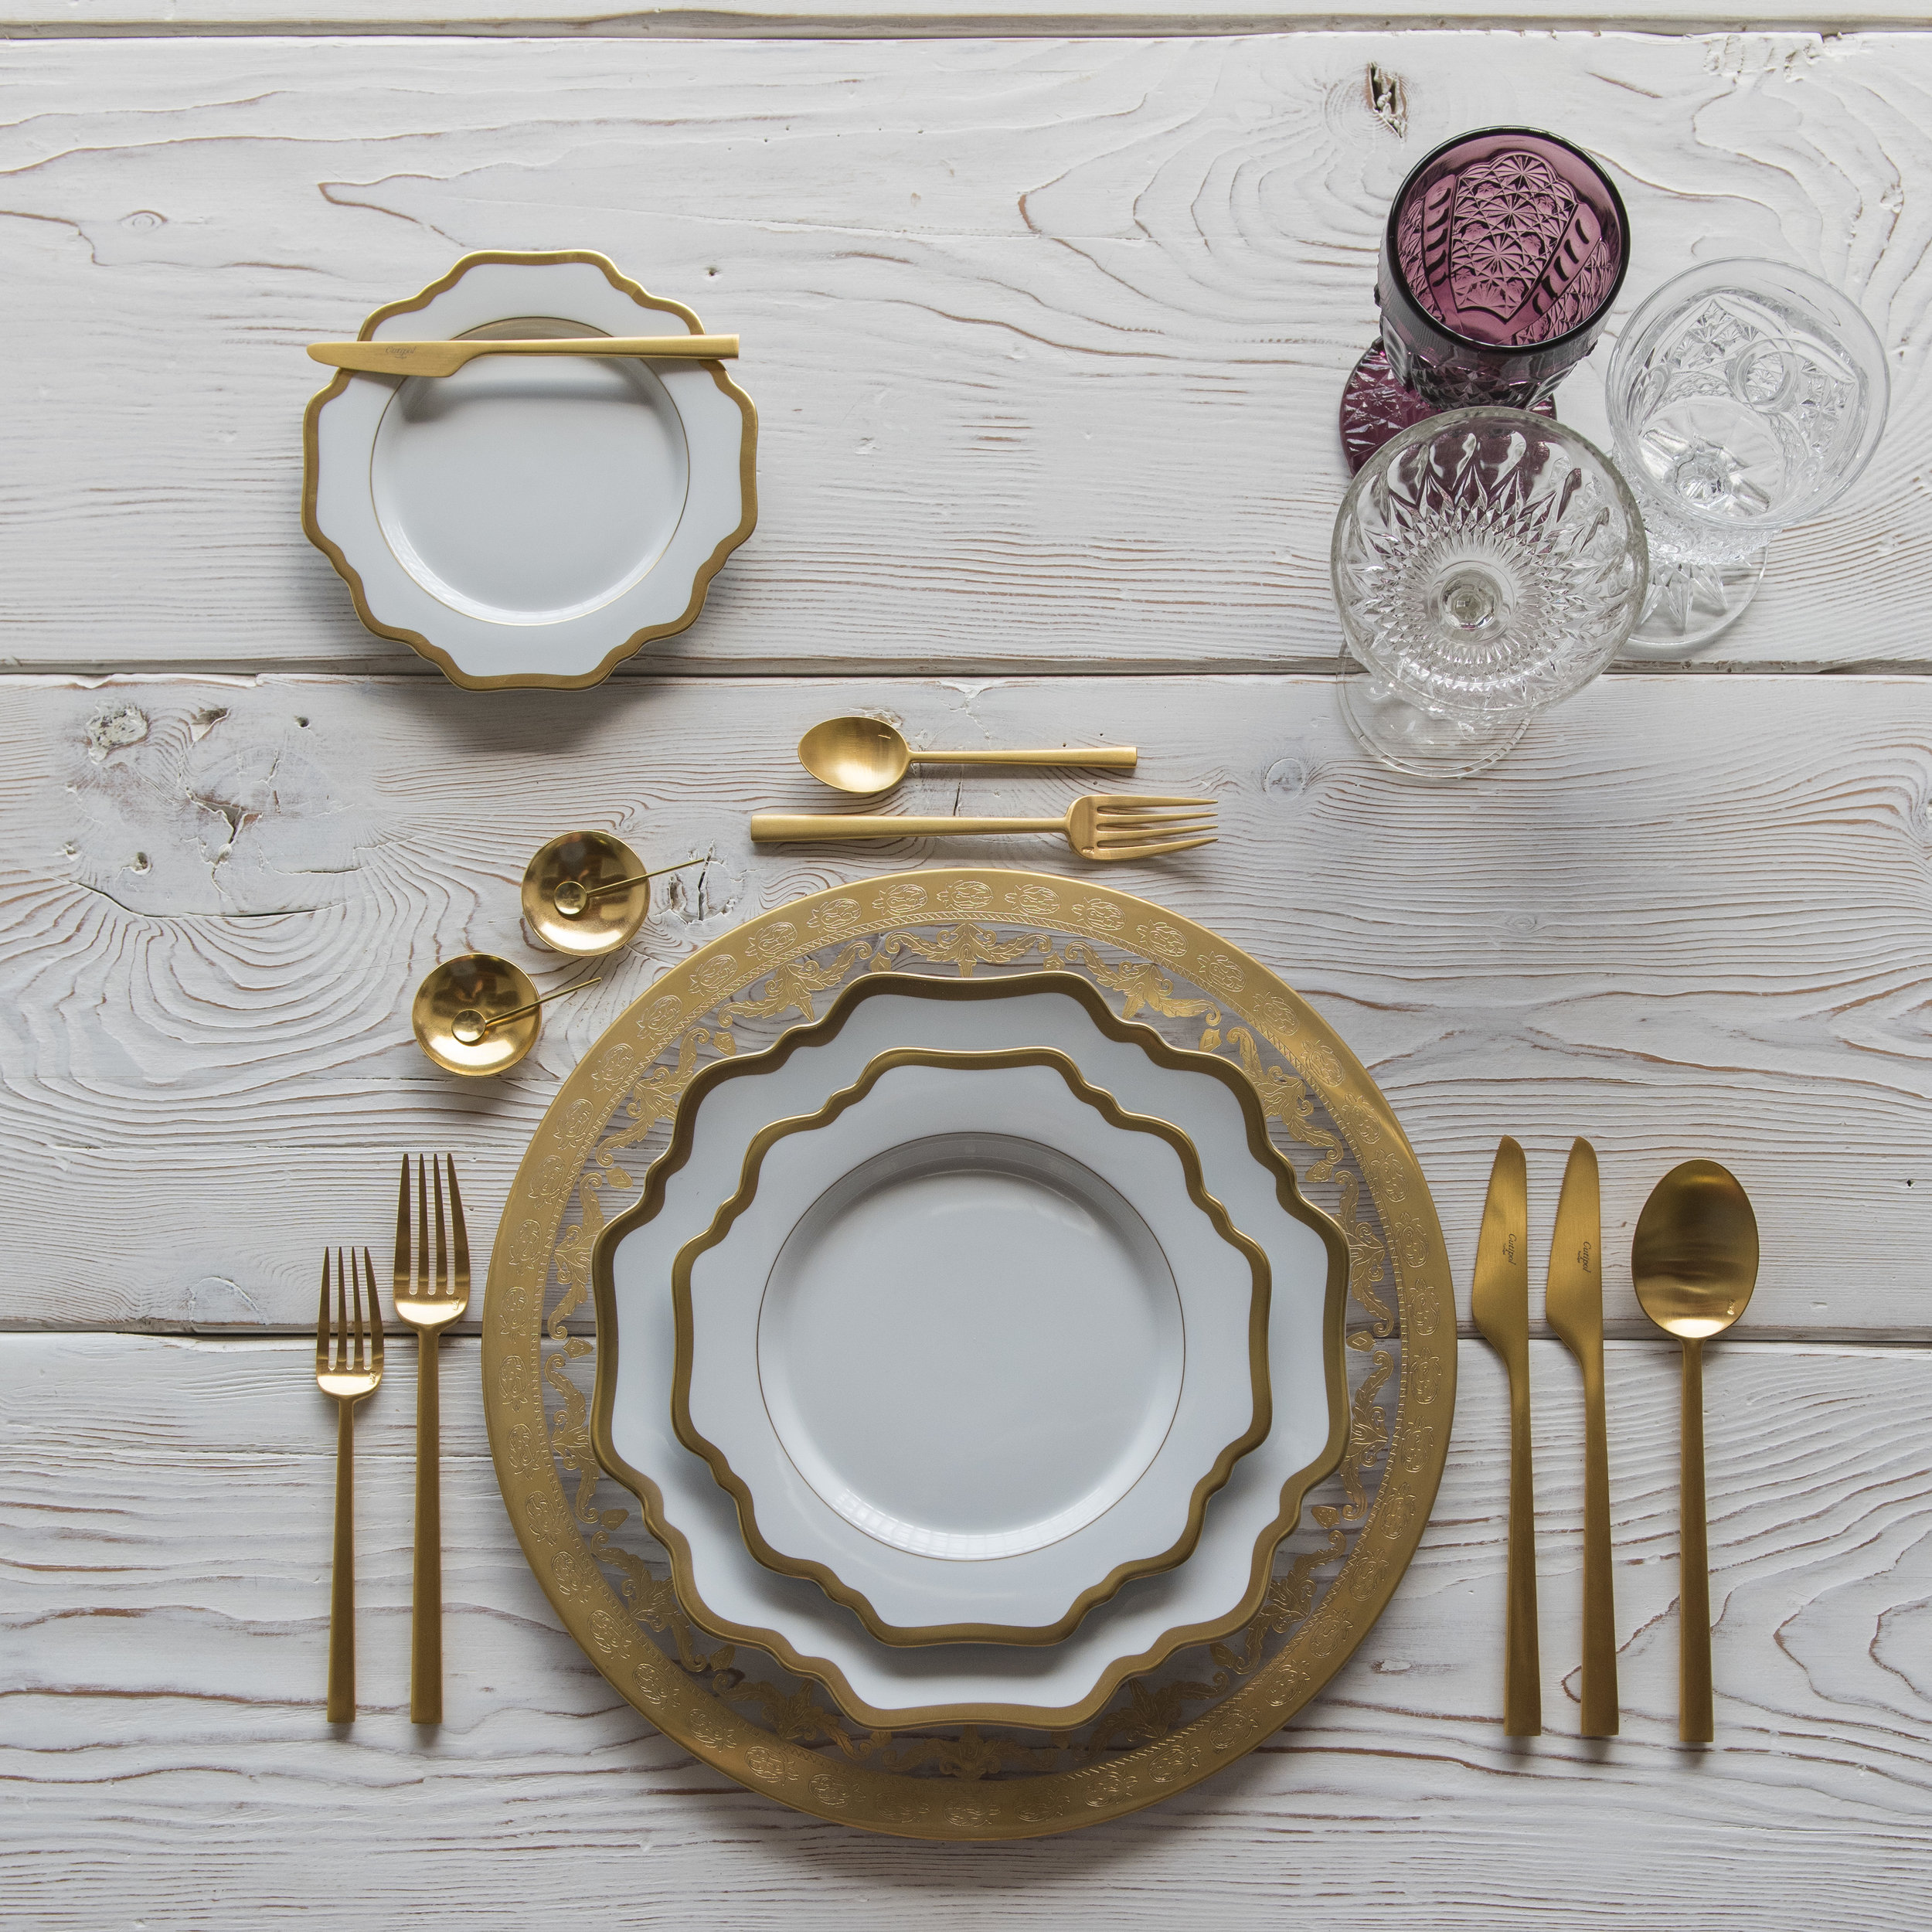 RENT: Versailles Glass Chargers in 24k Gold + Anna Weatherley Dinnerware in White/Gold + Rondo Flatware in Brushed 24k Gold + Purple Vintage Goblets + Early American Pressed Glass Goblets + Vintage Champagne Coupes + 14k Gold Salt Cellars + Tiny Gold Spoons  SHOP:Anna Weatherley Dinnerware in White/Gold + Rondo Flatware in Brushed 24k Gold + 14k Gold Salt Cellars + Tiny Gold Spoons